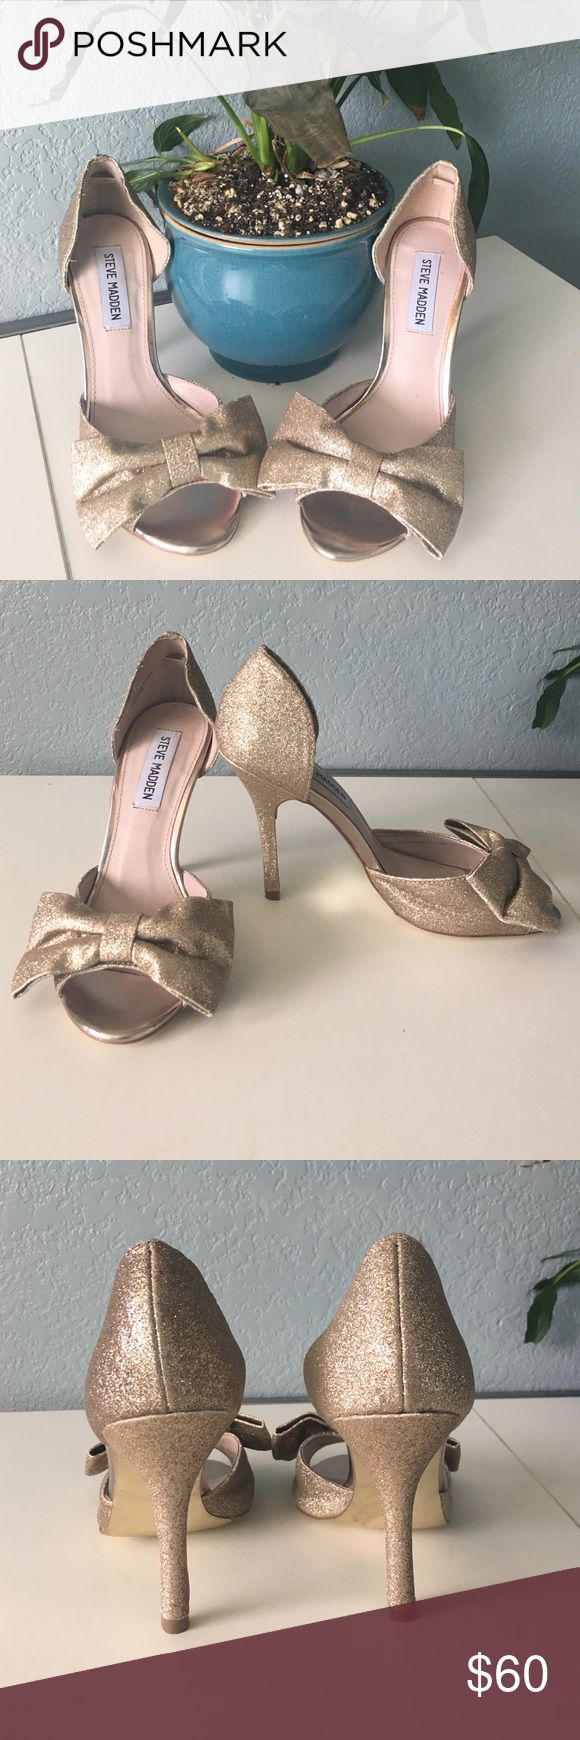 🎉HP🎉Gorgeous Steve Madden Heels! These Steve Madden heels are perfect for an evening wear! It comes in a size 7 and the heel height is 4 inches. There is a slight discoloration on the inside of the shoe but that is not noticeable when you are wearing it. Let me know if you're interested! Steve Madden Shoes Heels